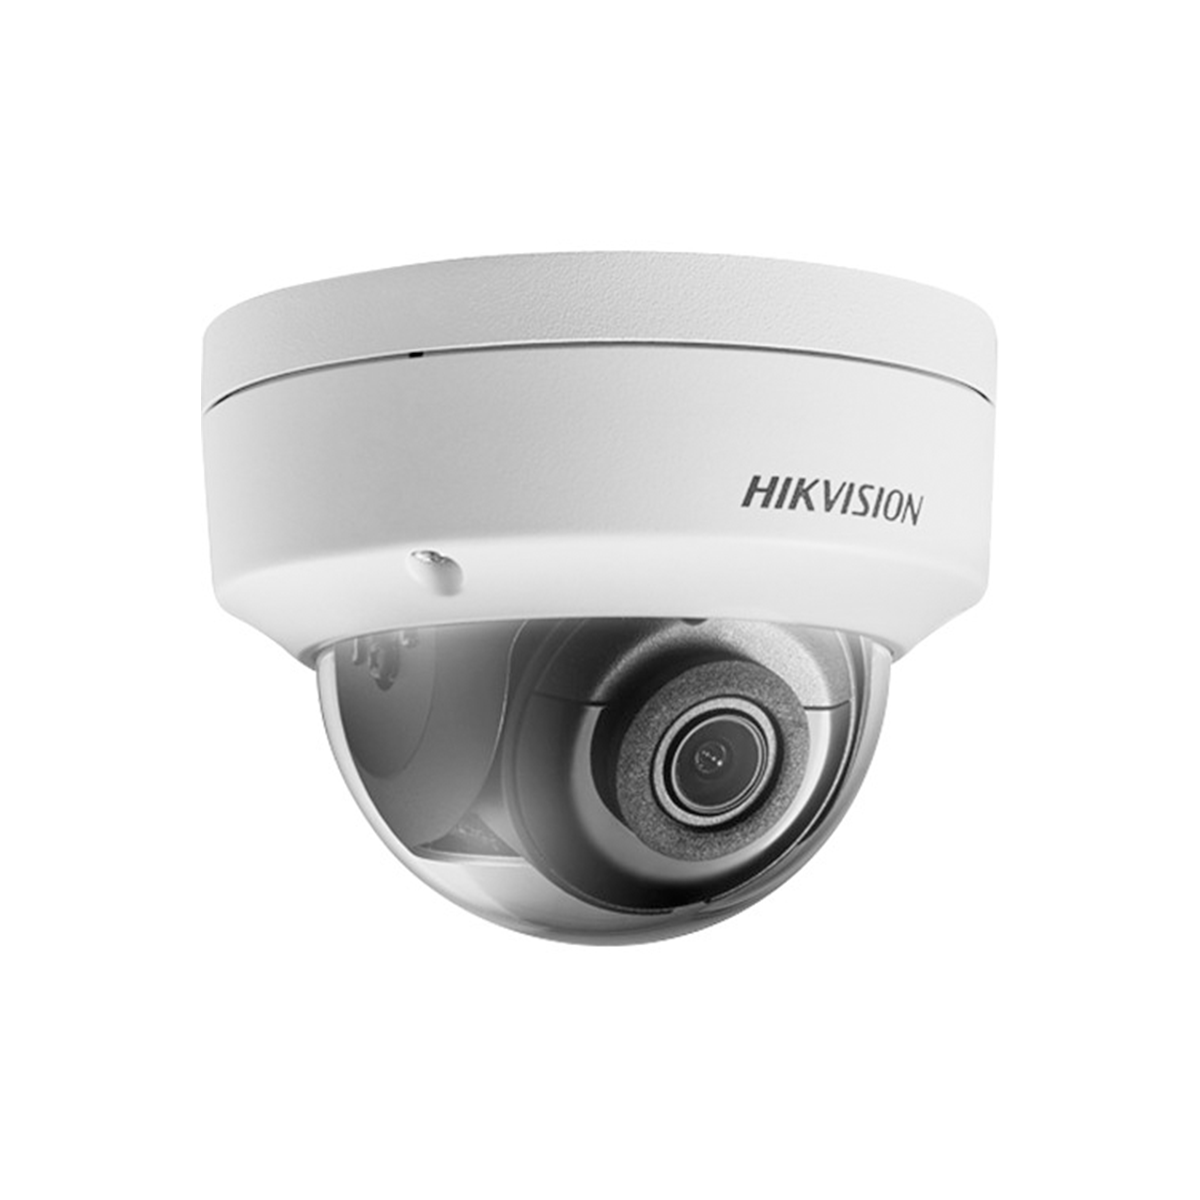 Hikvision 8 MP Network Dome Camera | DS-2CD2185FWD-I